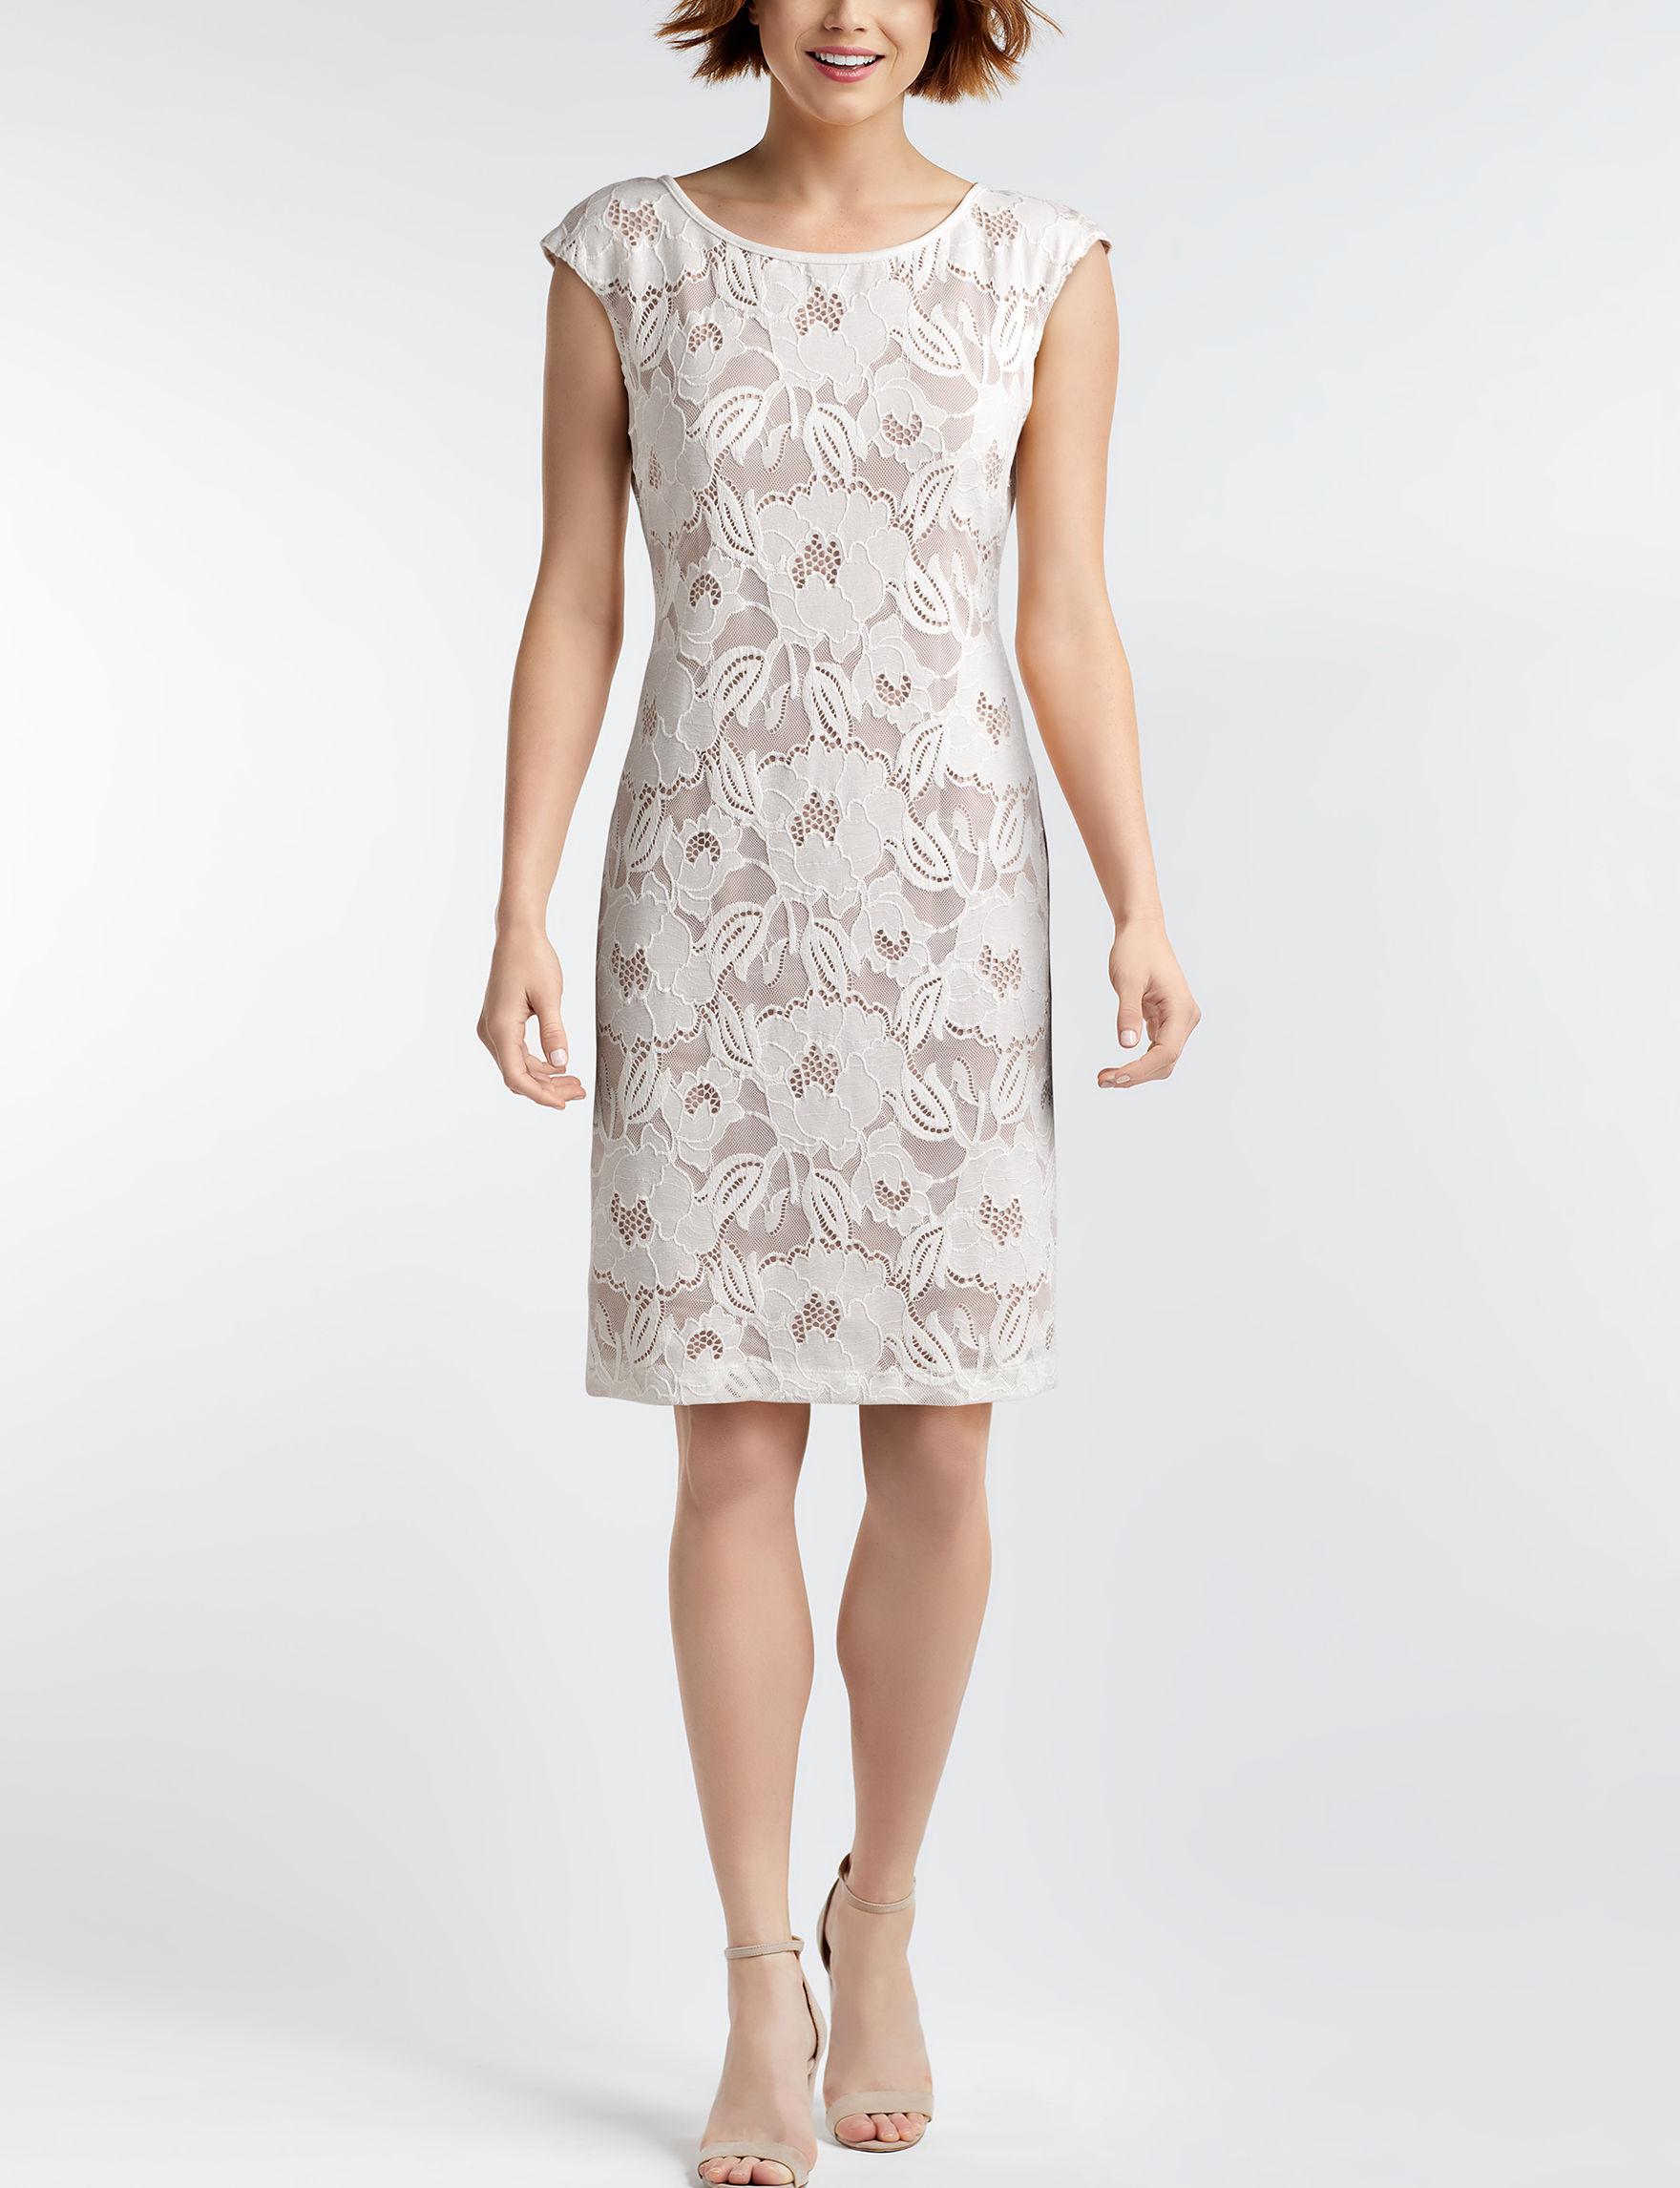 Connected Ivory Everyday & Casual Sheath Dresses